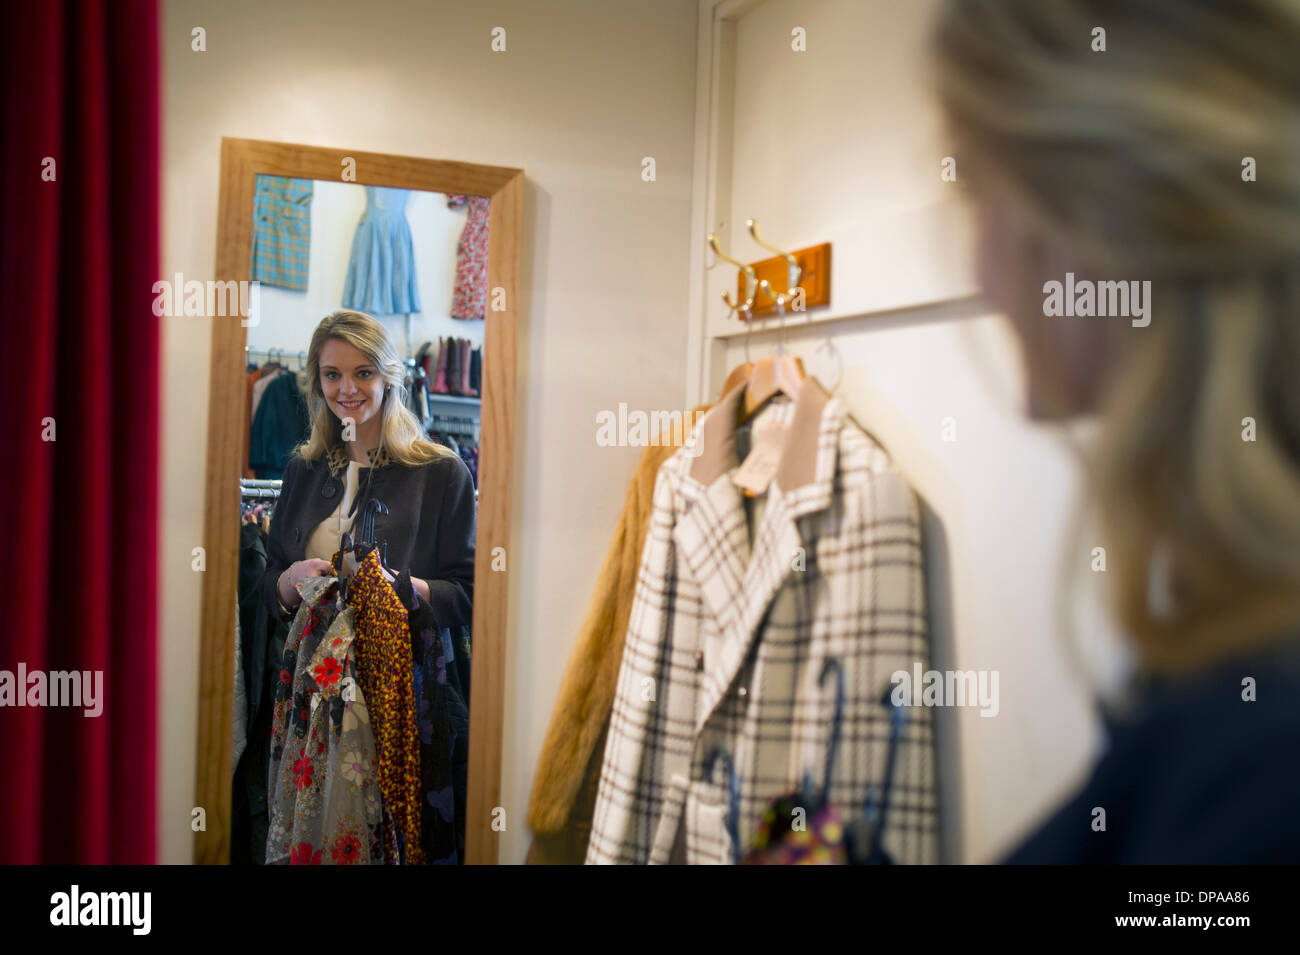 Woman taking clothes into fitting room - Stock Image